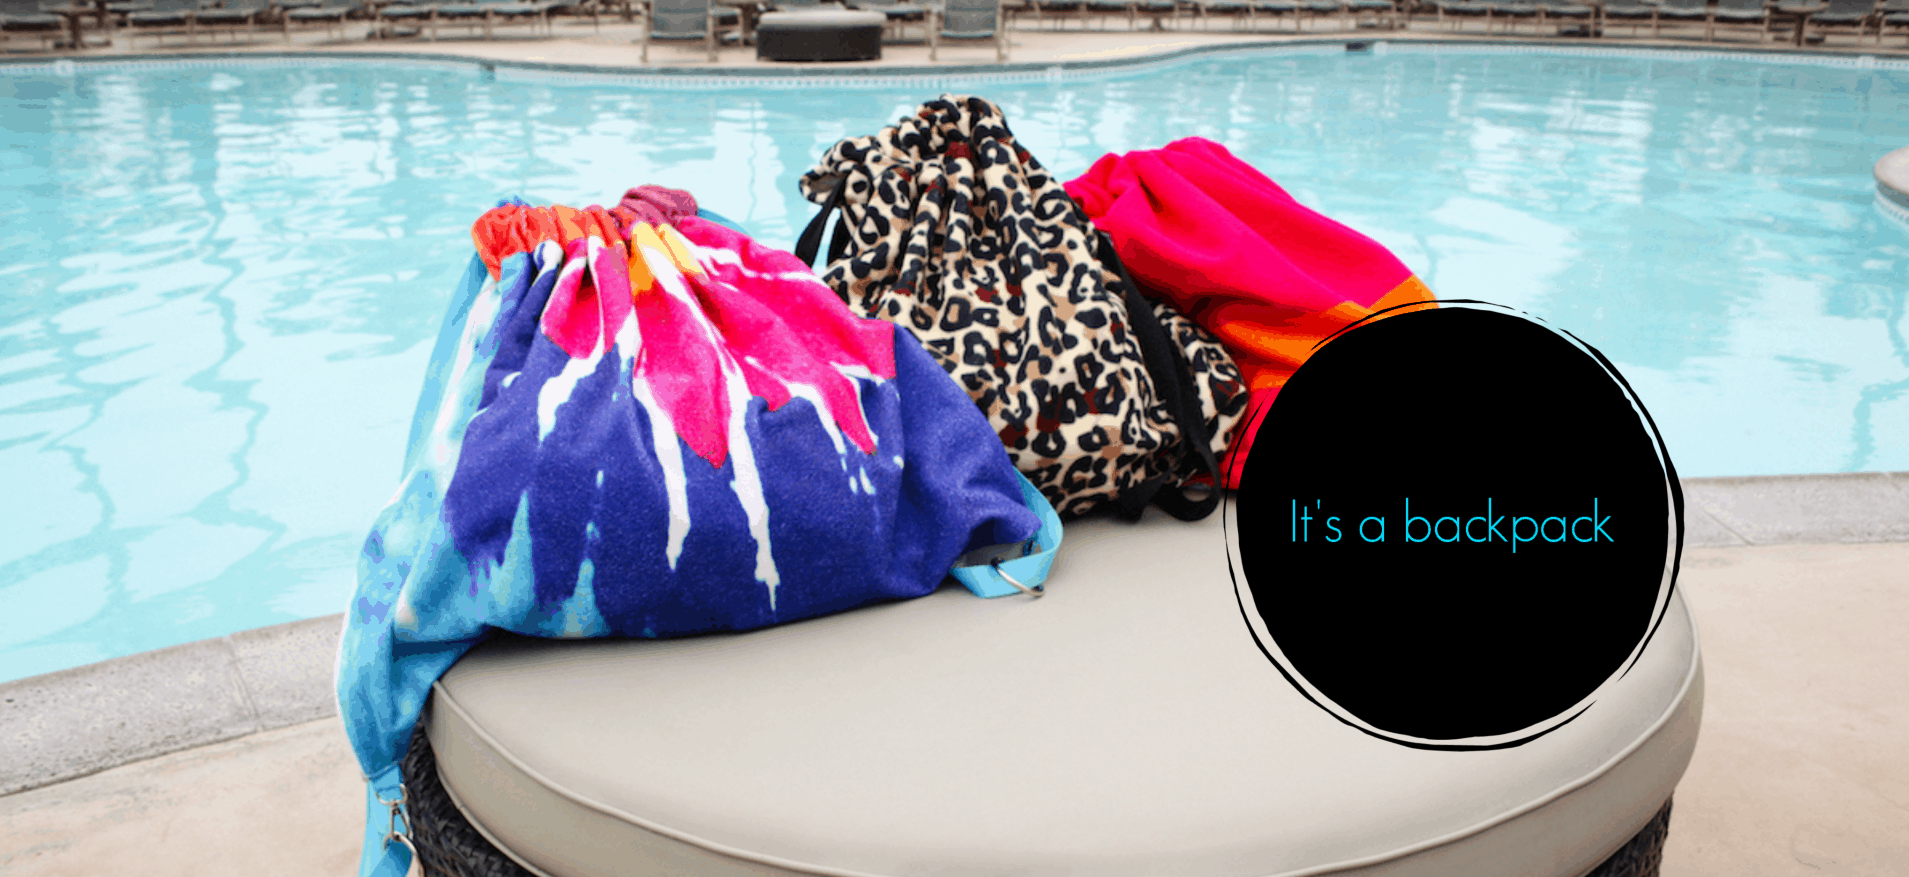 Pool Pack Towels closed up as backpacks by a pool